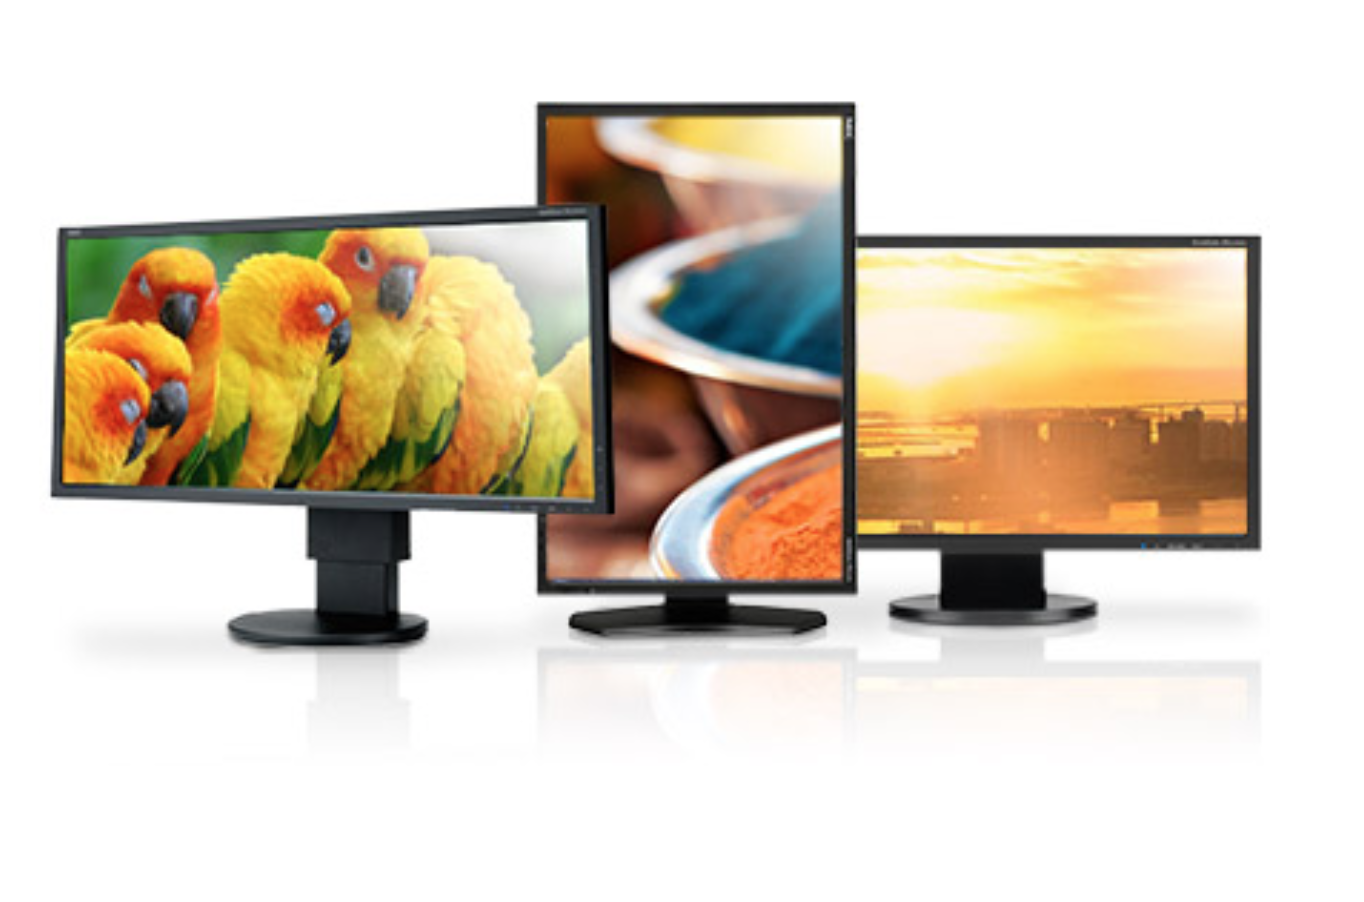 Monitore und Displays